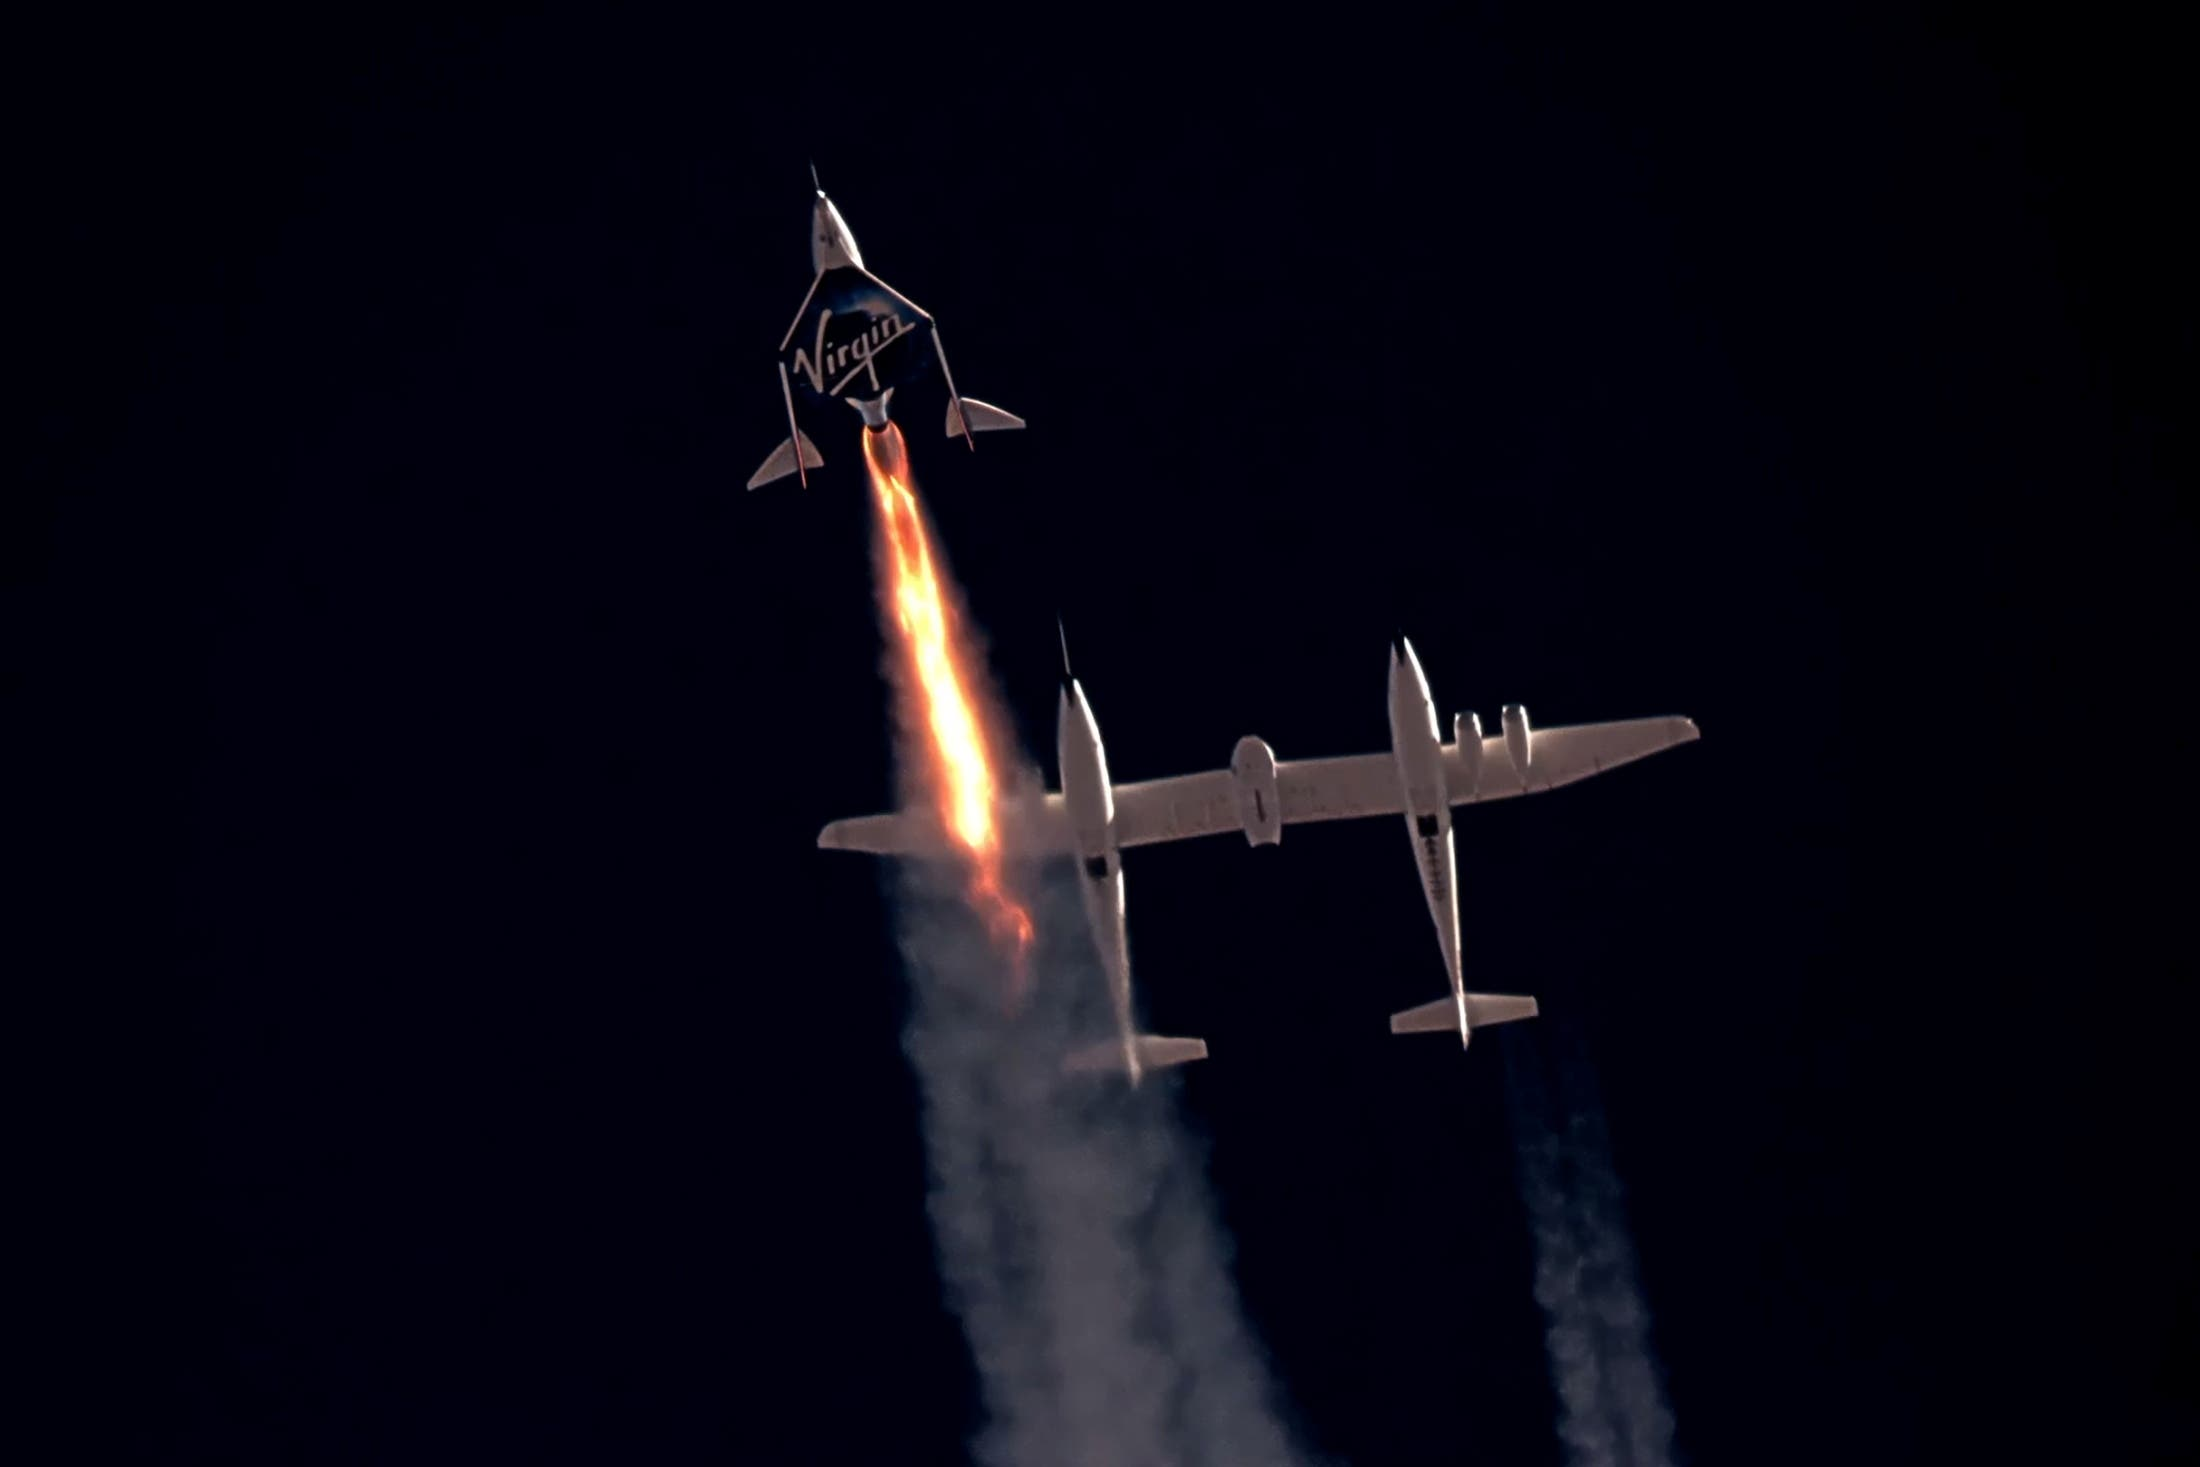 Virgin Galactic's passenger rocket plane VSS Unity, carrying Richard Branson and crew, begins its ascent to the edge of space above Spaceport America near Truth or Consequences, New Mexico, US July 11, 2021 in a still image from video. (File photo: Reuters)